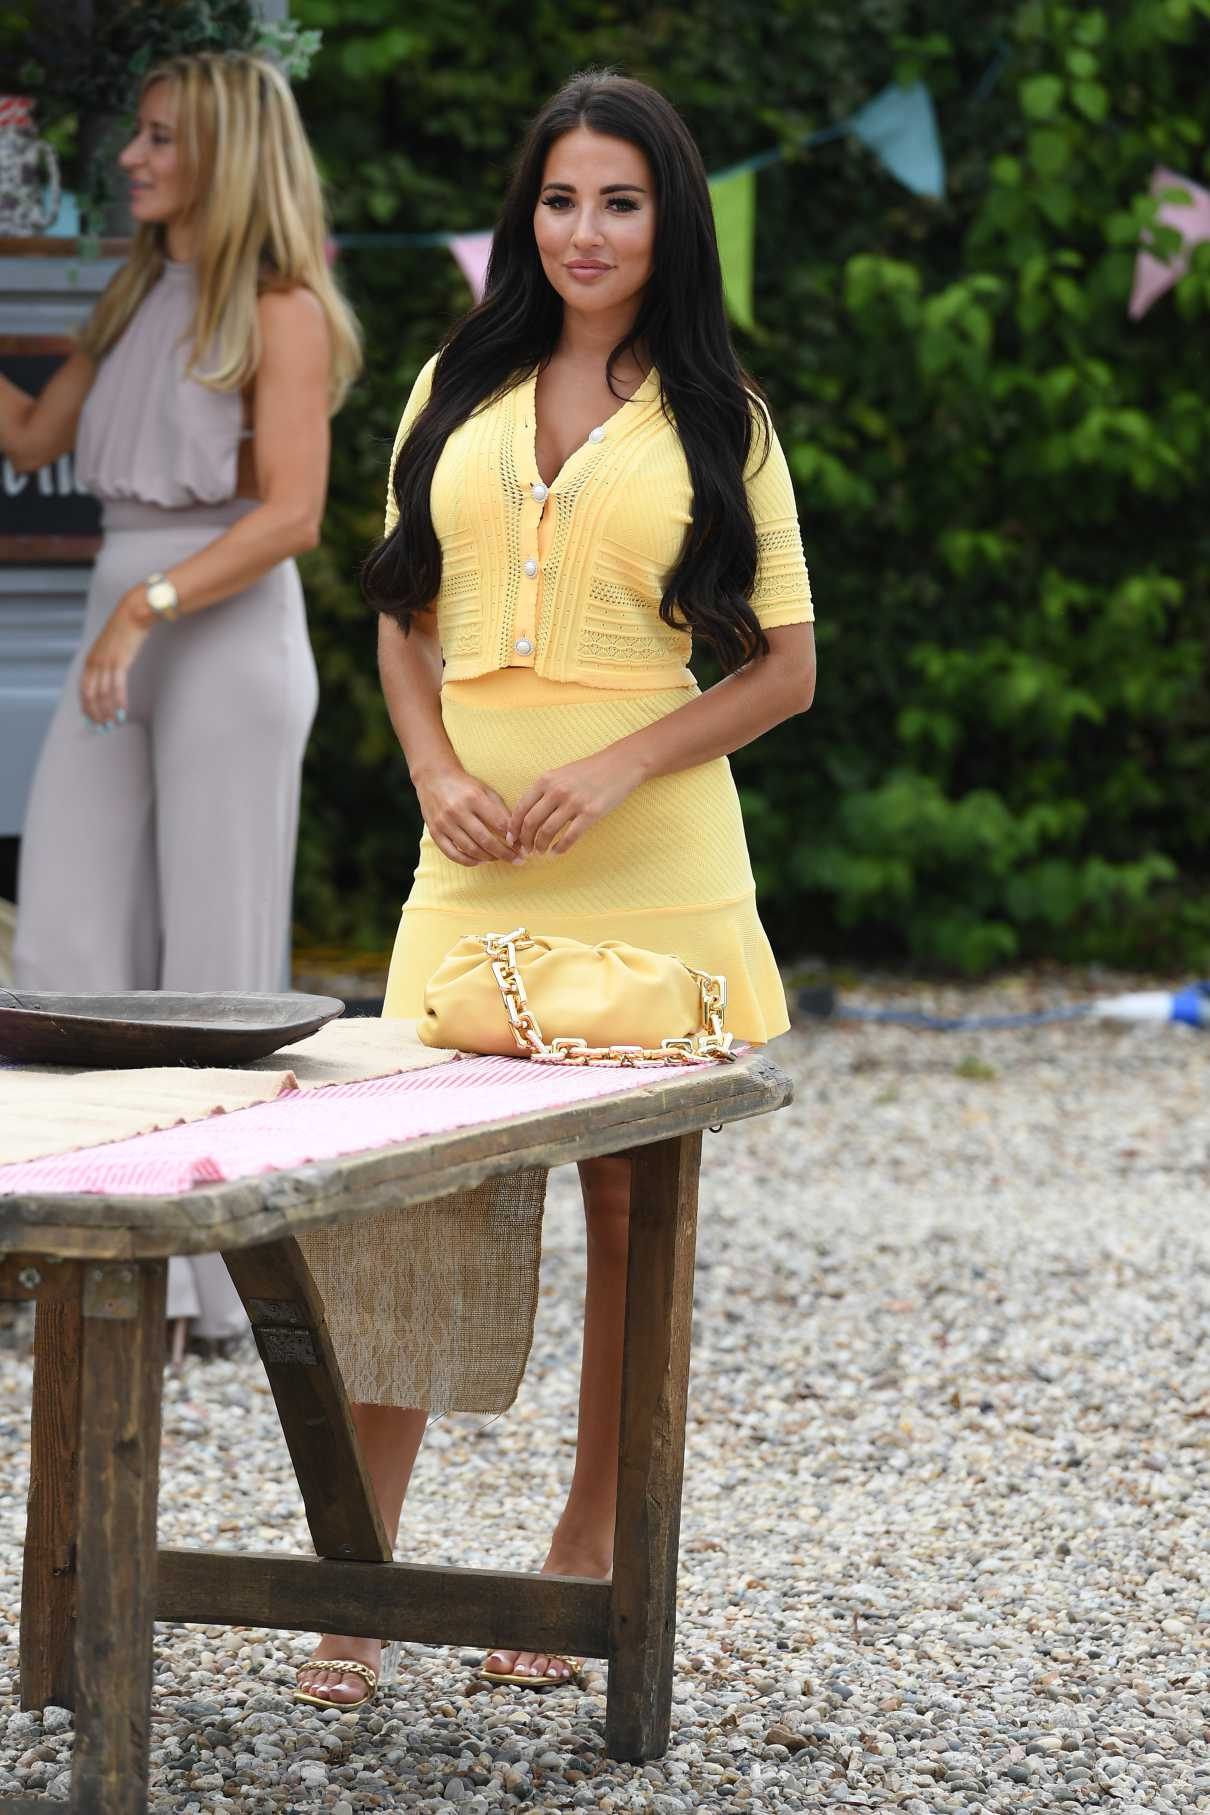 Yazmin Oukhellou in a Yellow Suit